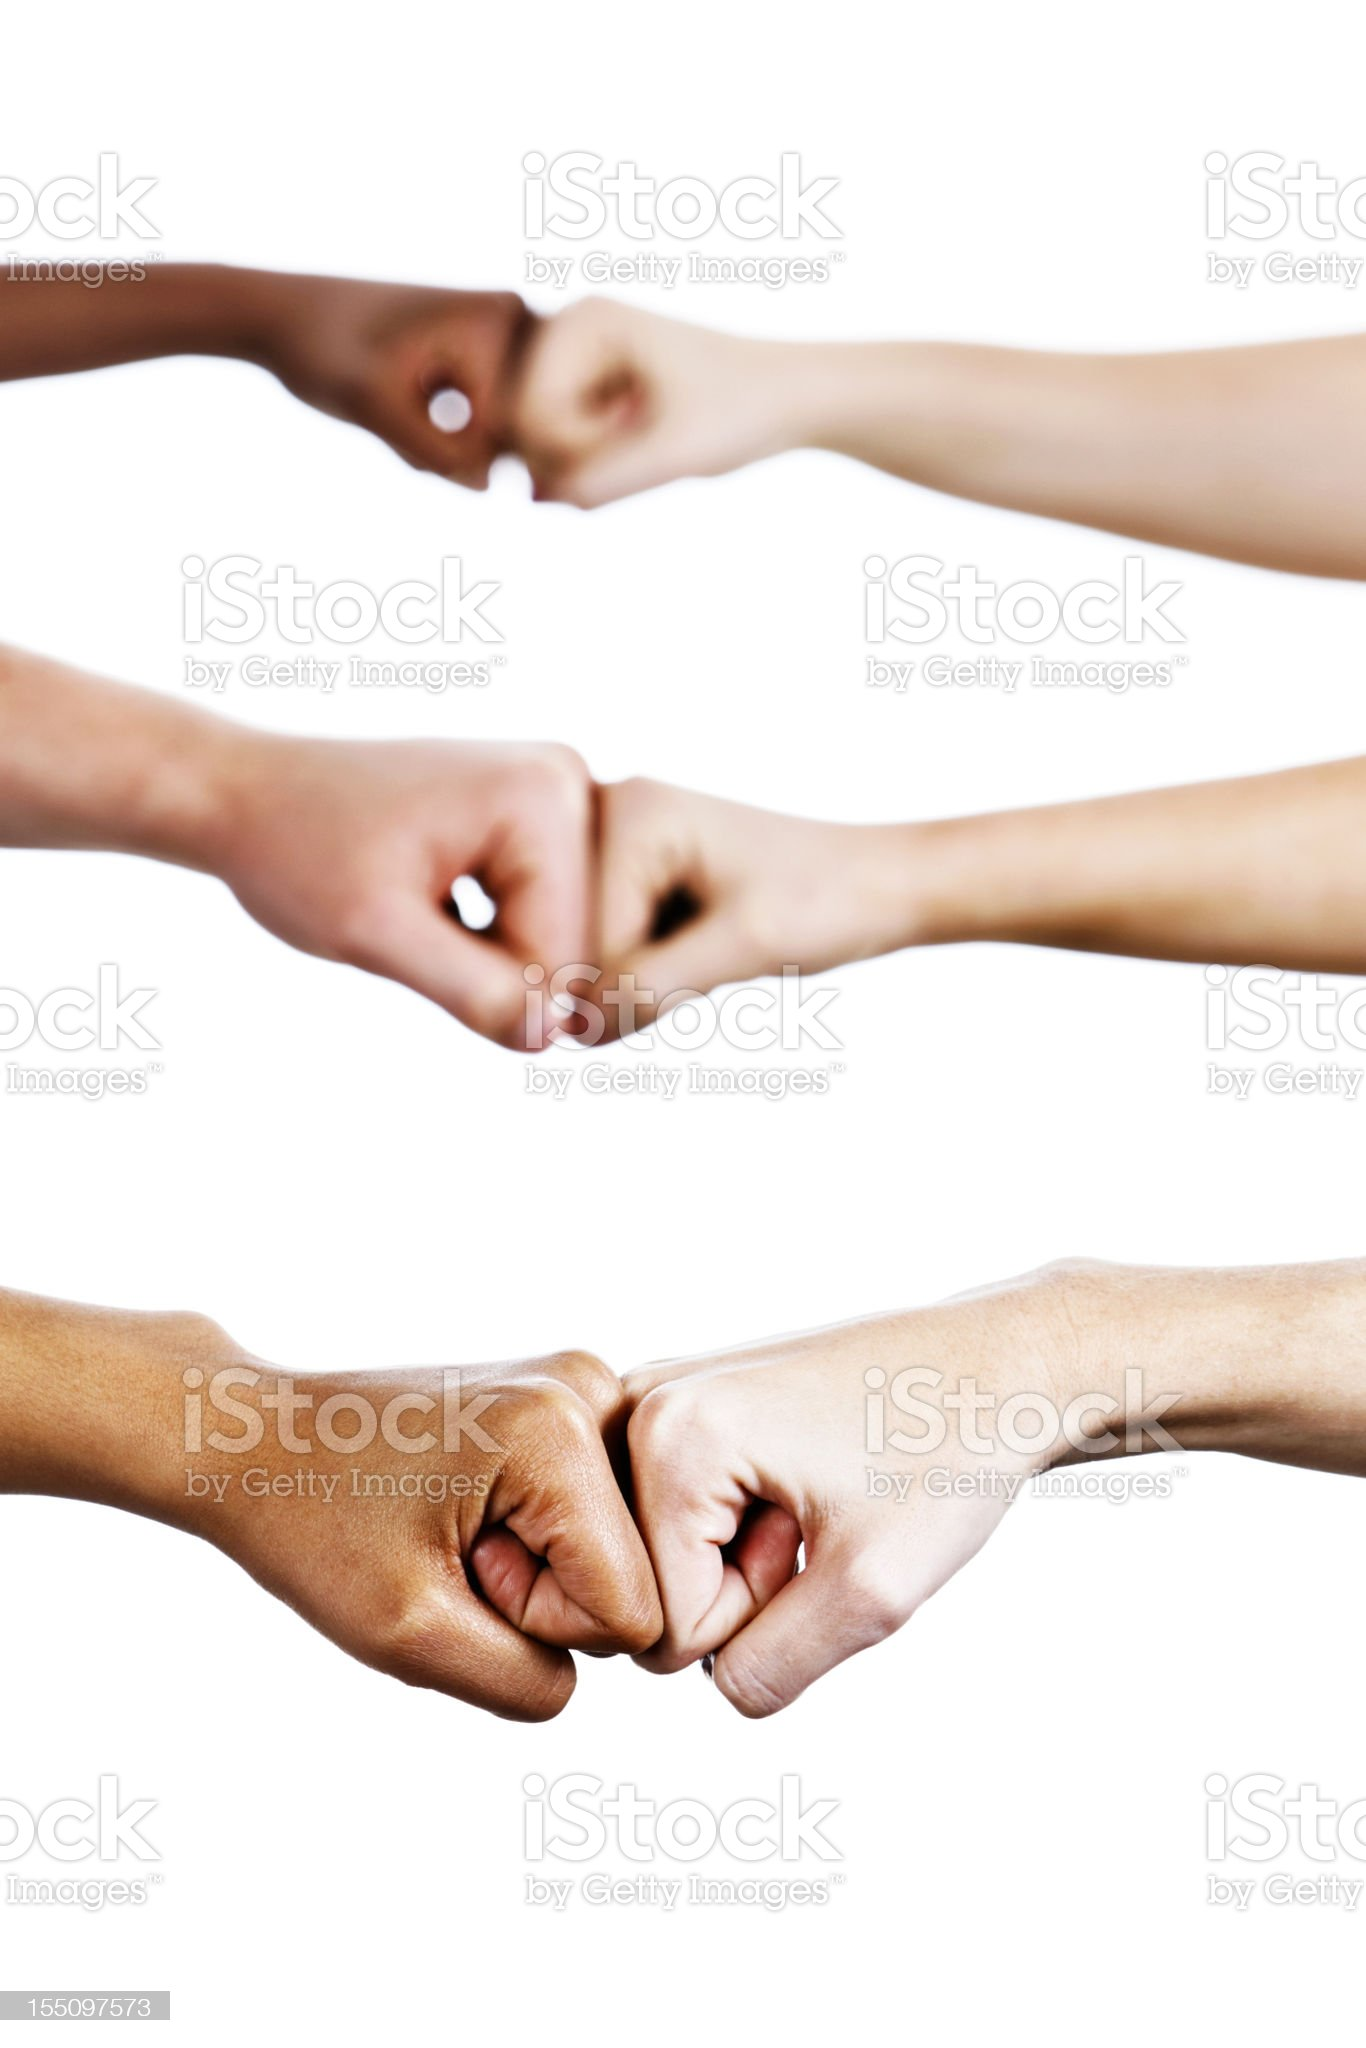 Three pairs of hands bump fists in agreement or greeting royalty-free stock photo